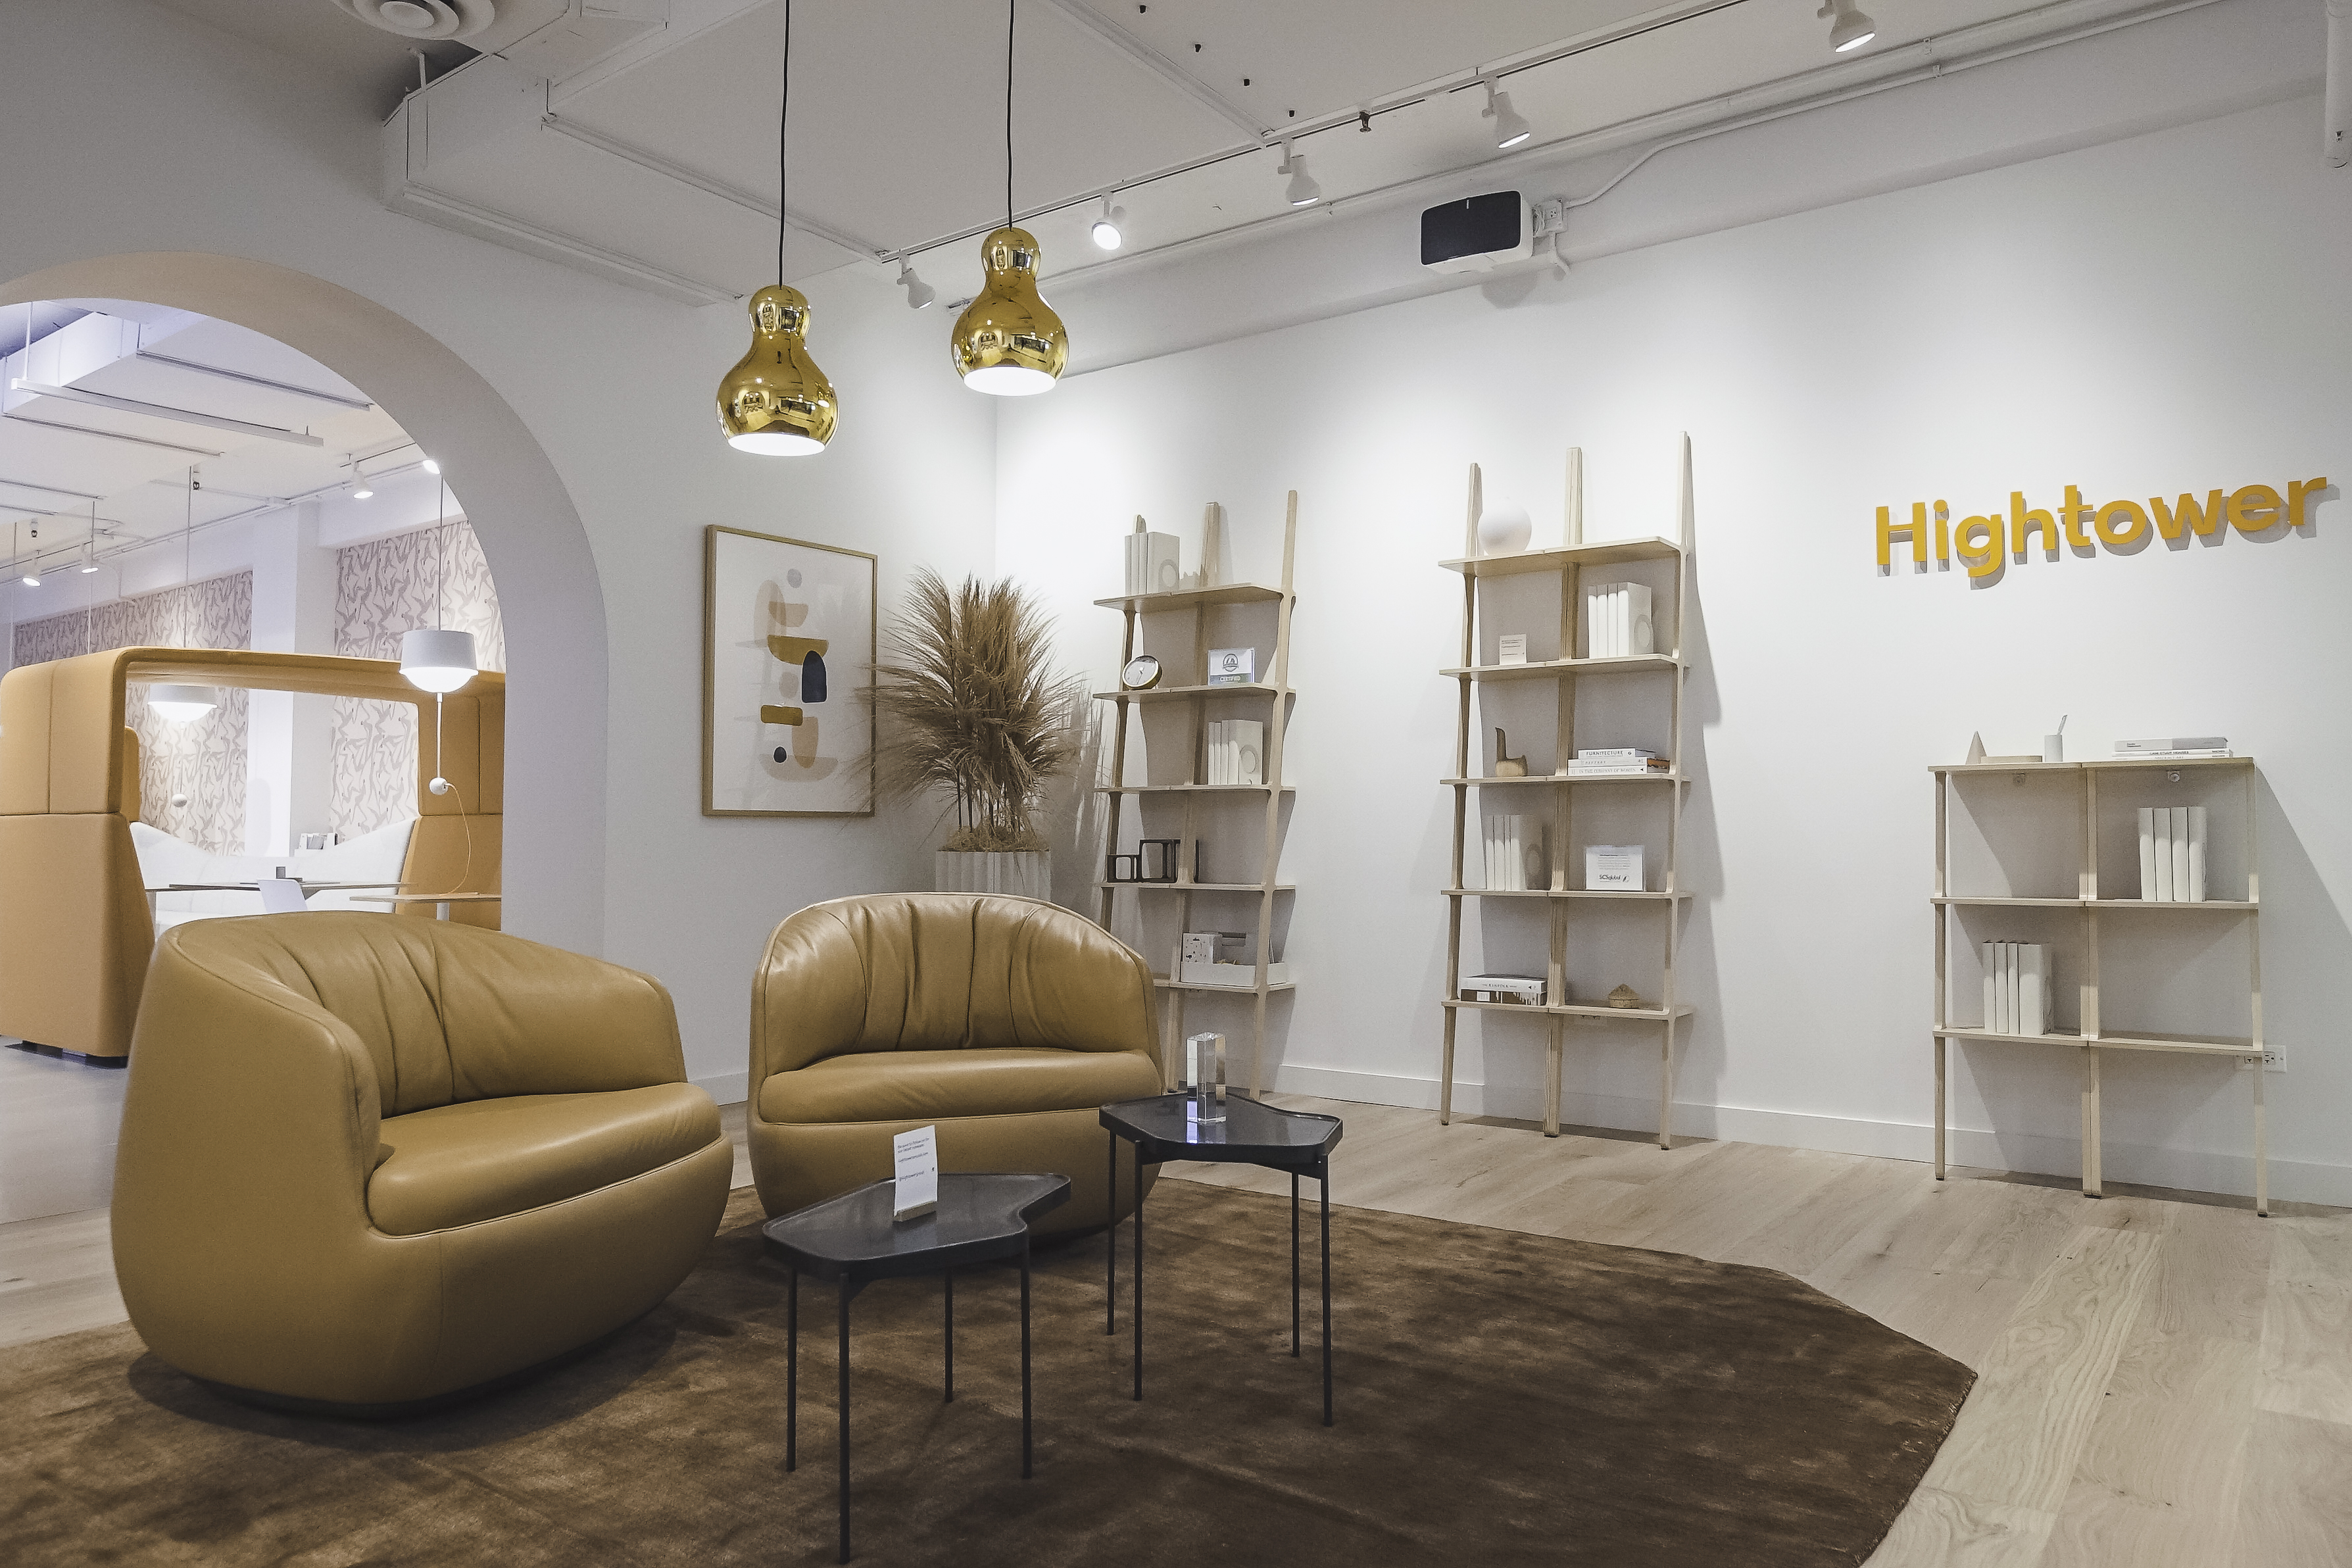 Image of the entry to Hightower's showroom. The room includes three sets of Libri Bookshelves, two Gimbal Lowback Rockers, two Pond Tables, and two gold Calabash Pendants.